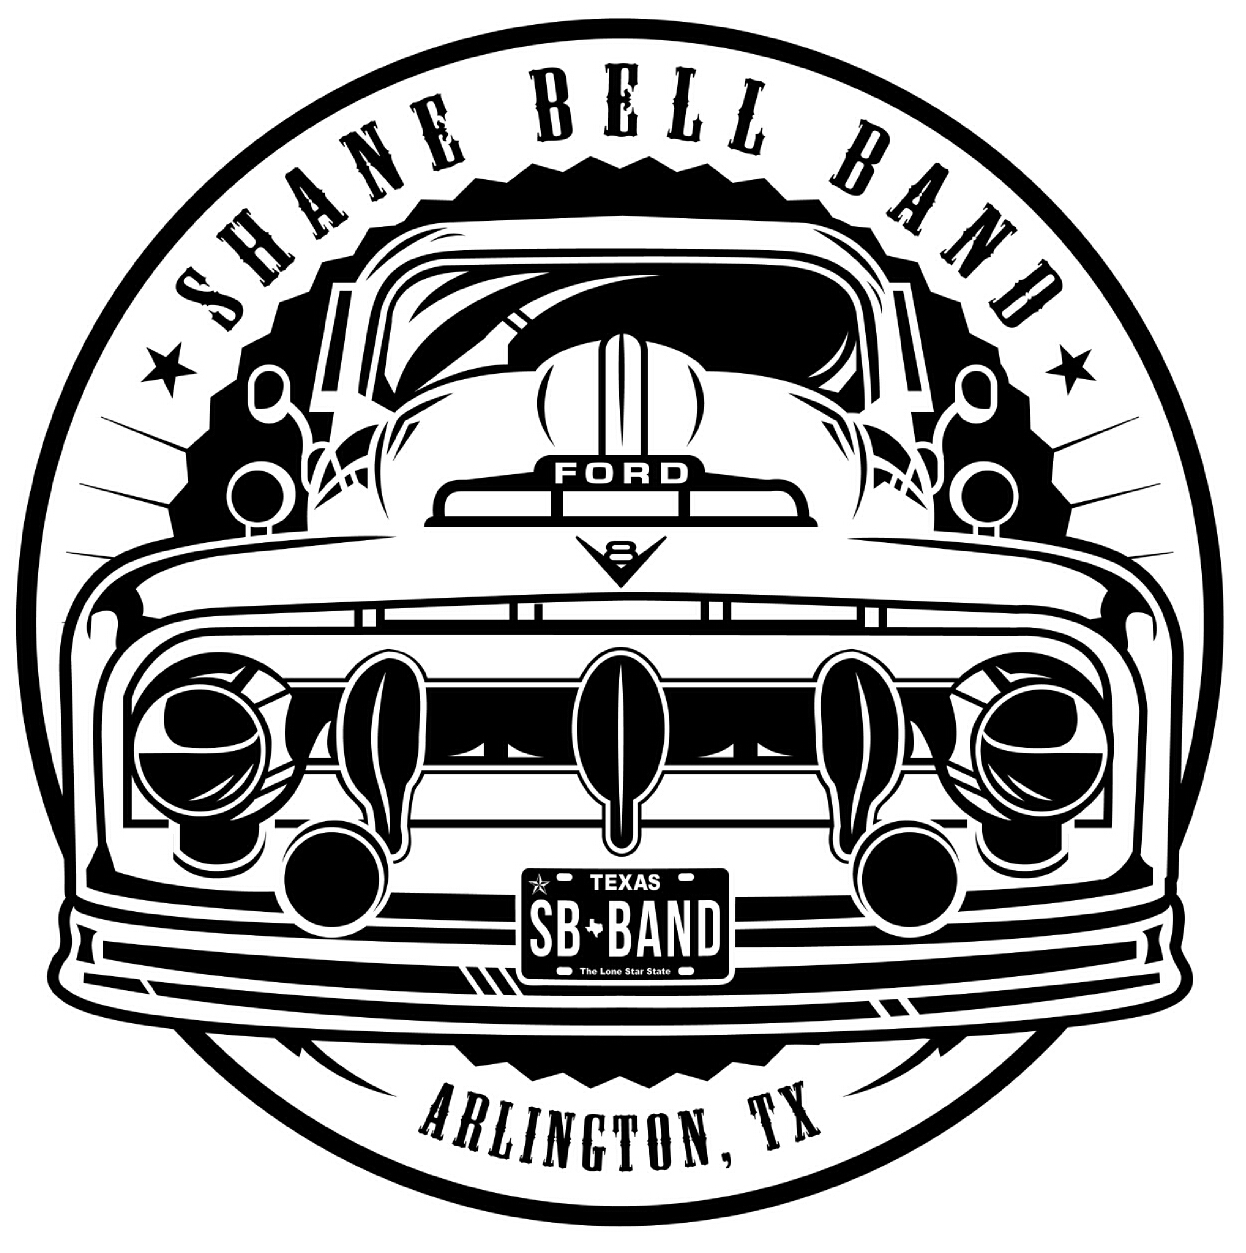 The Shane Bell Band Merchandise (Official)